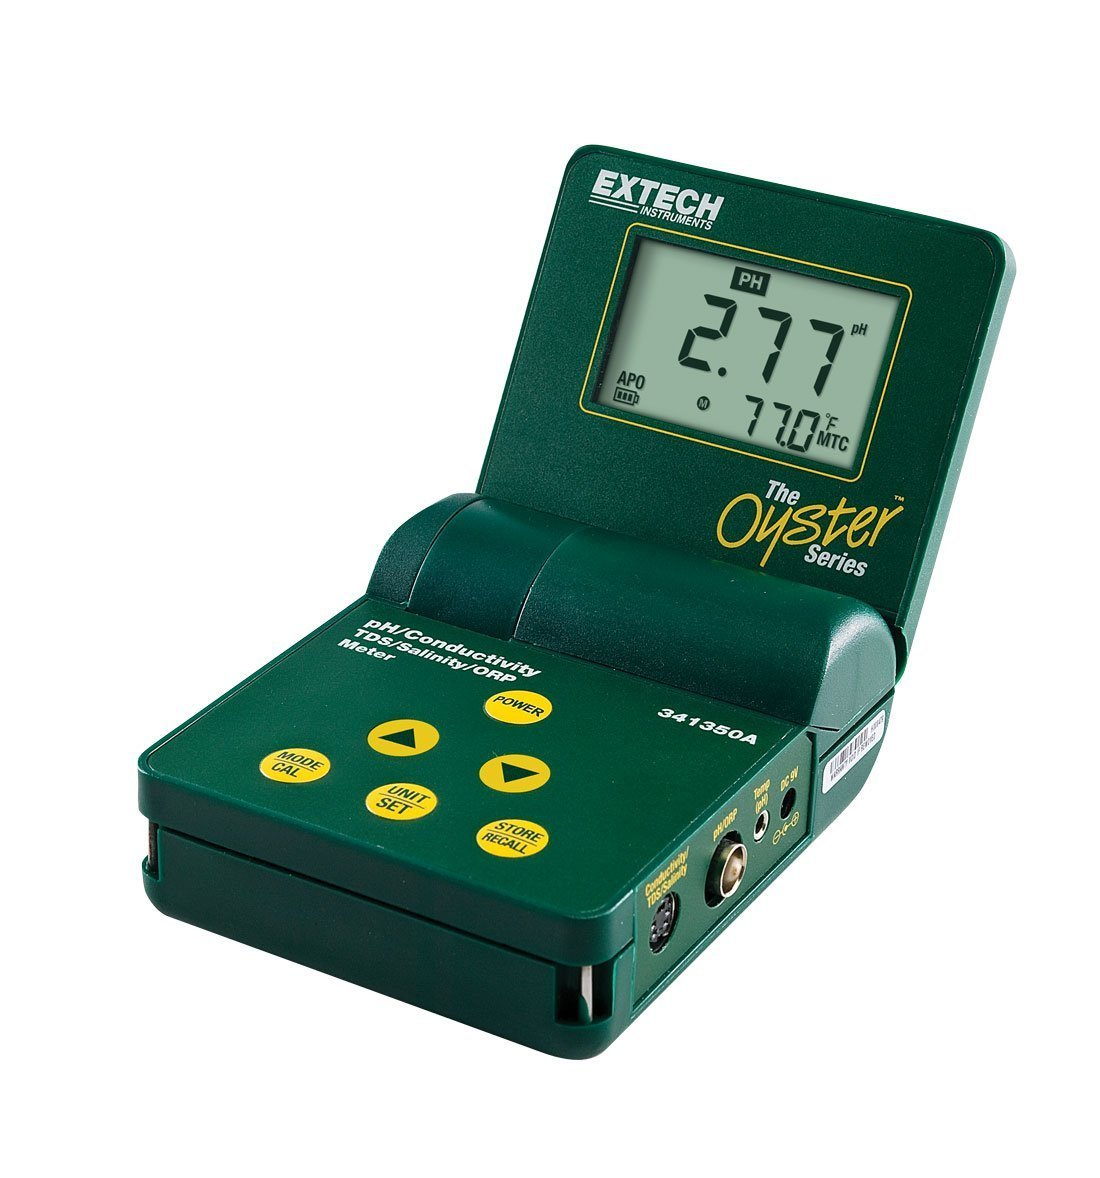 Extech 341350A-P-NIST Oyster Series pH/Conductivity/TDS/ORP/Salinity Meter with NIST